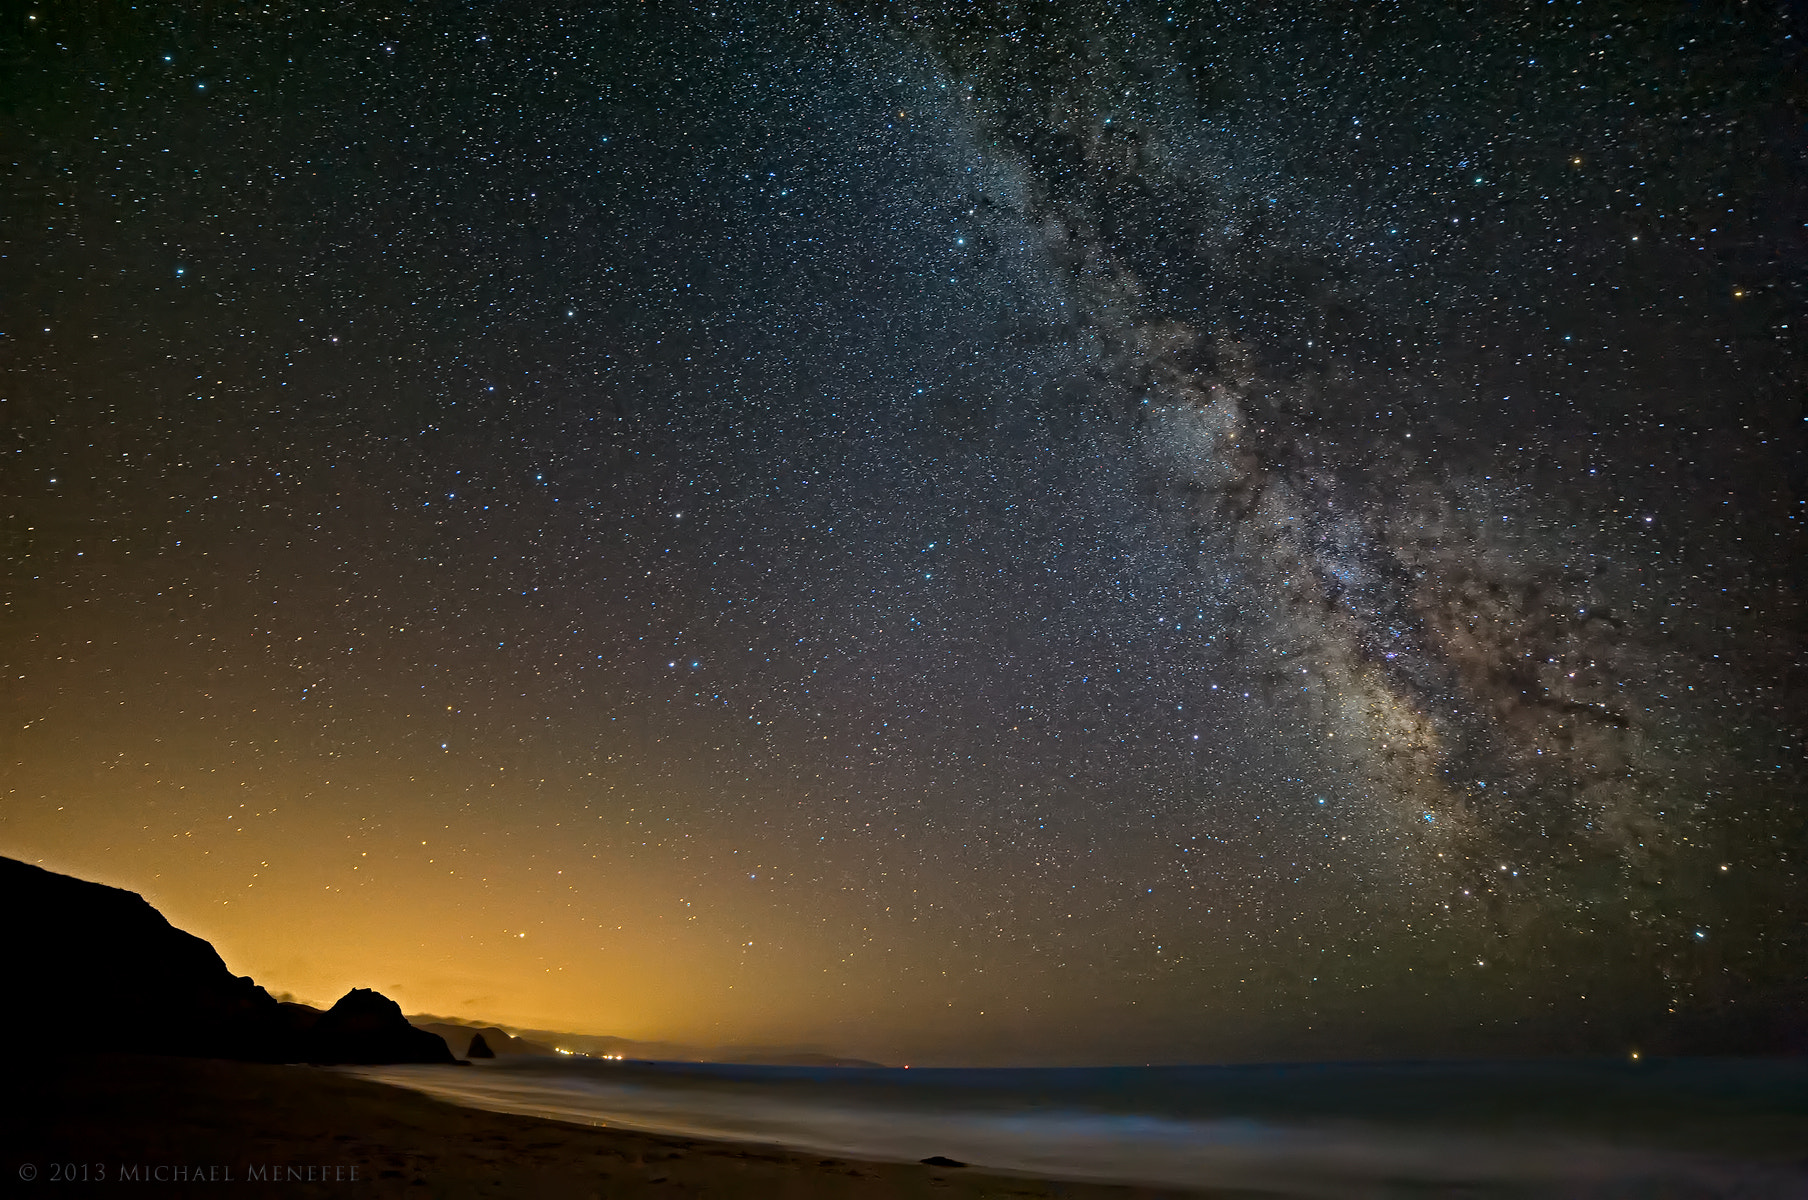 Photograph Stellar Cali Waves by Michael Menefee on 500px